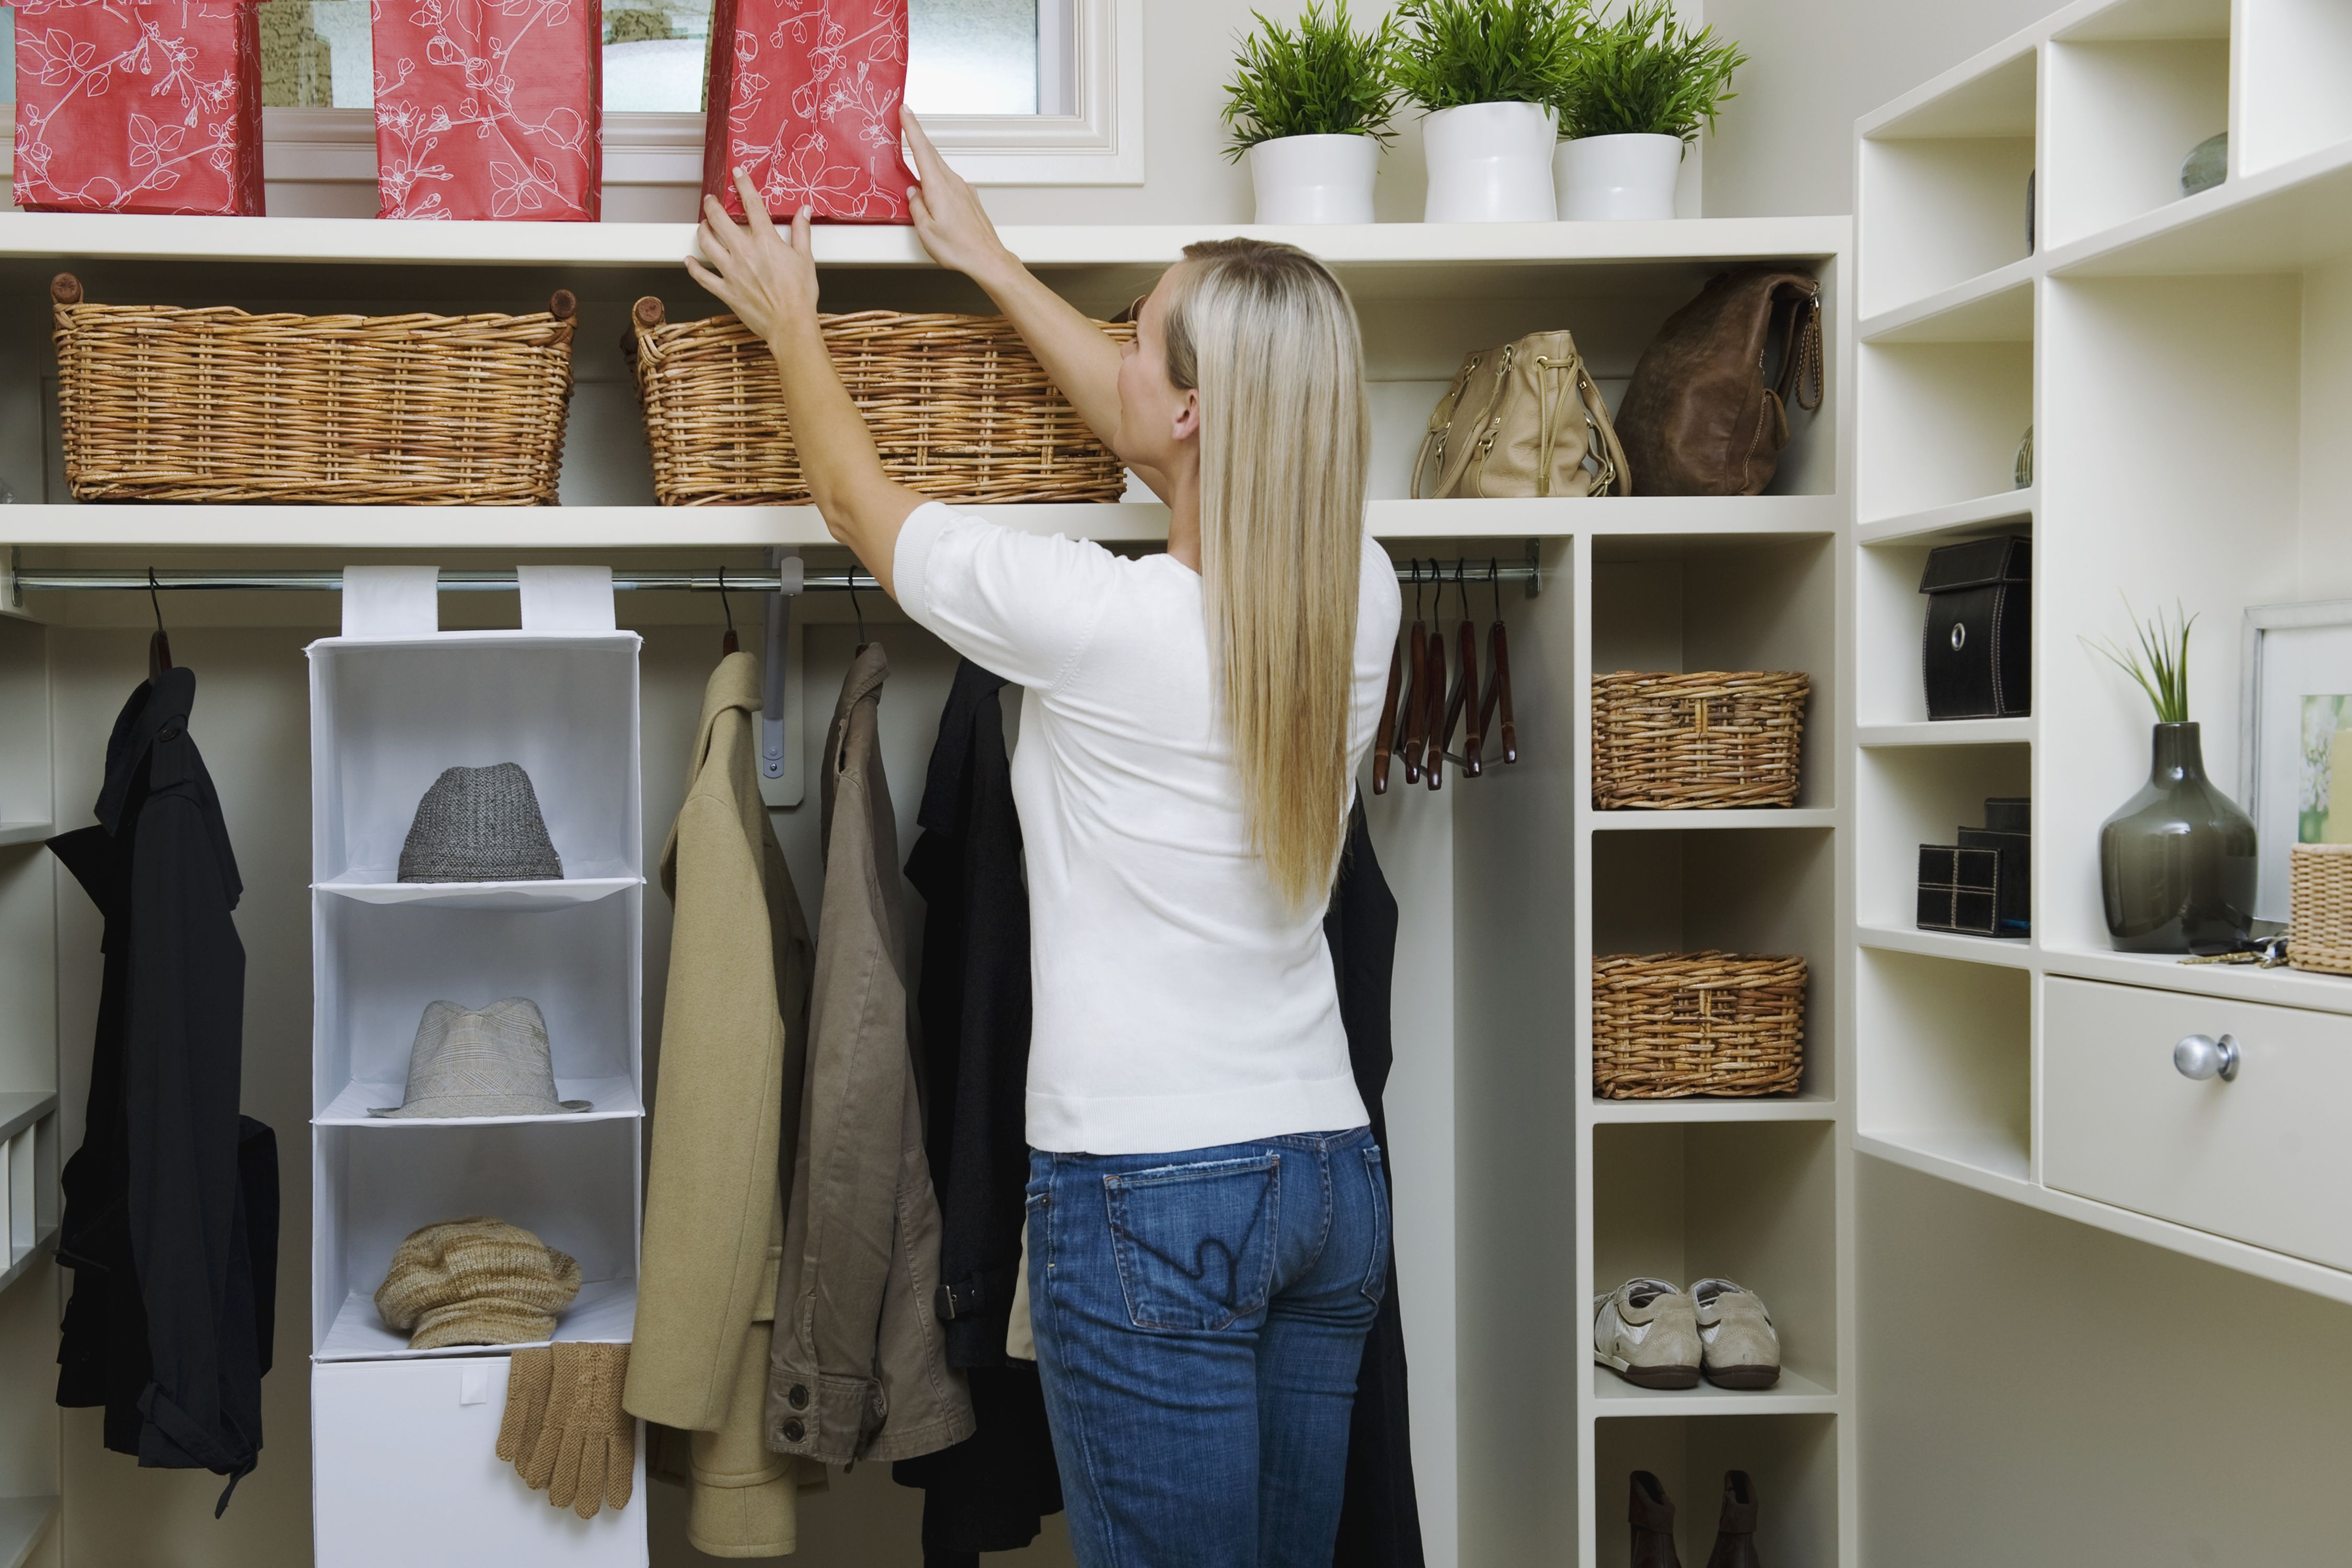 Easy Tricks for Keeping Your House Tidy, Courtesy of a Professional Organizer